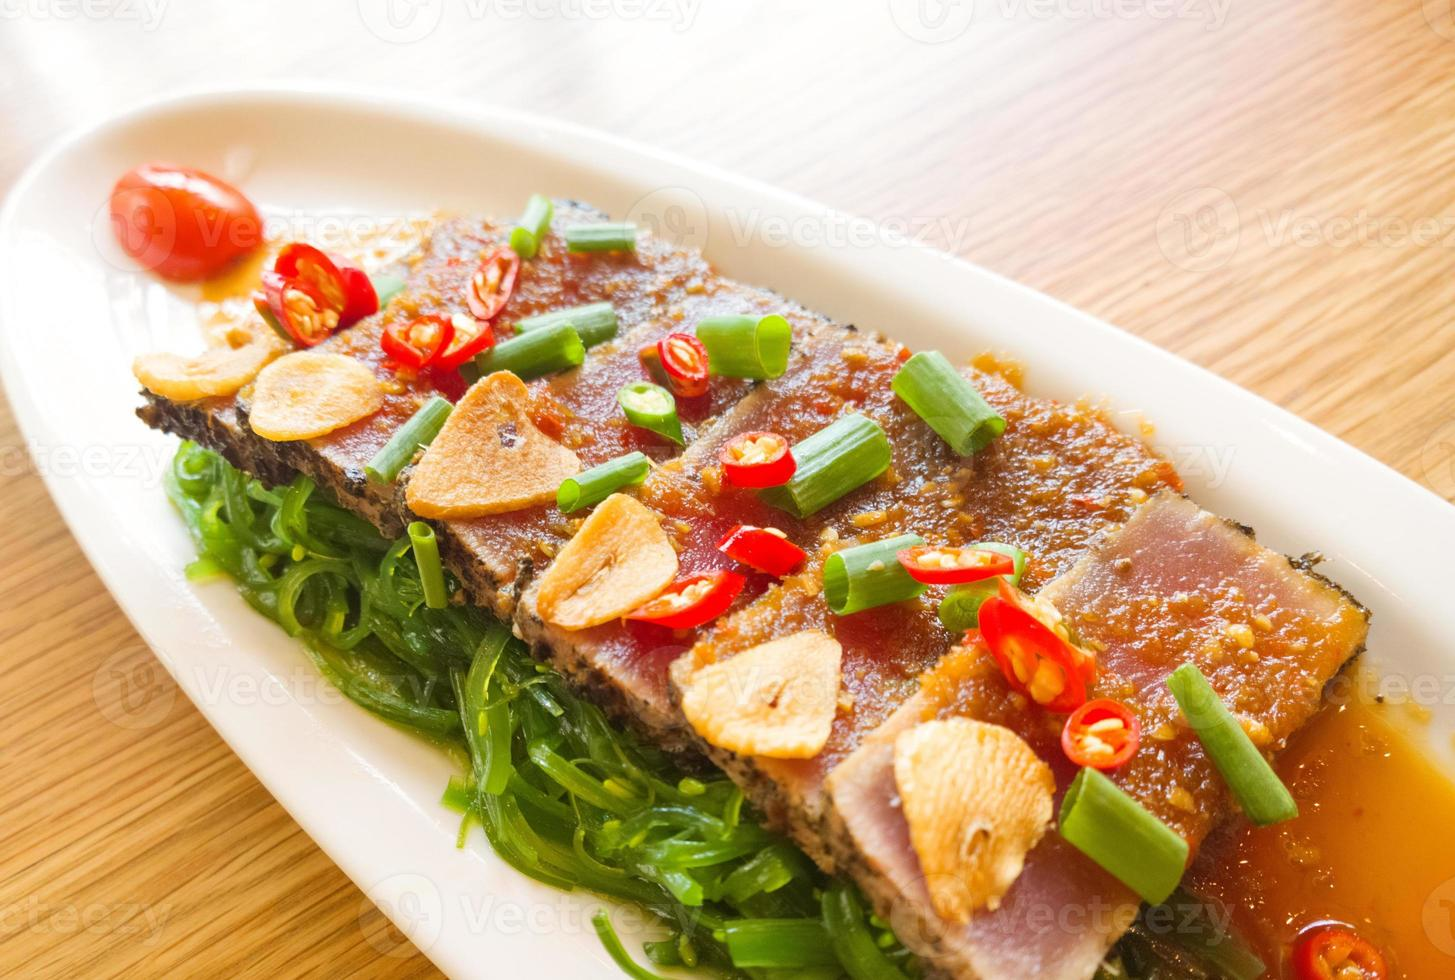 smoke tuna spicy with salad frieze on wooden table photo